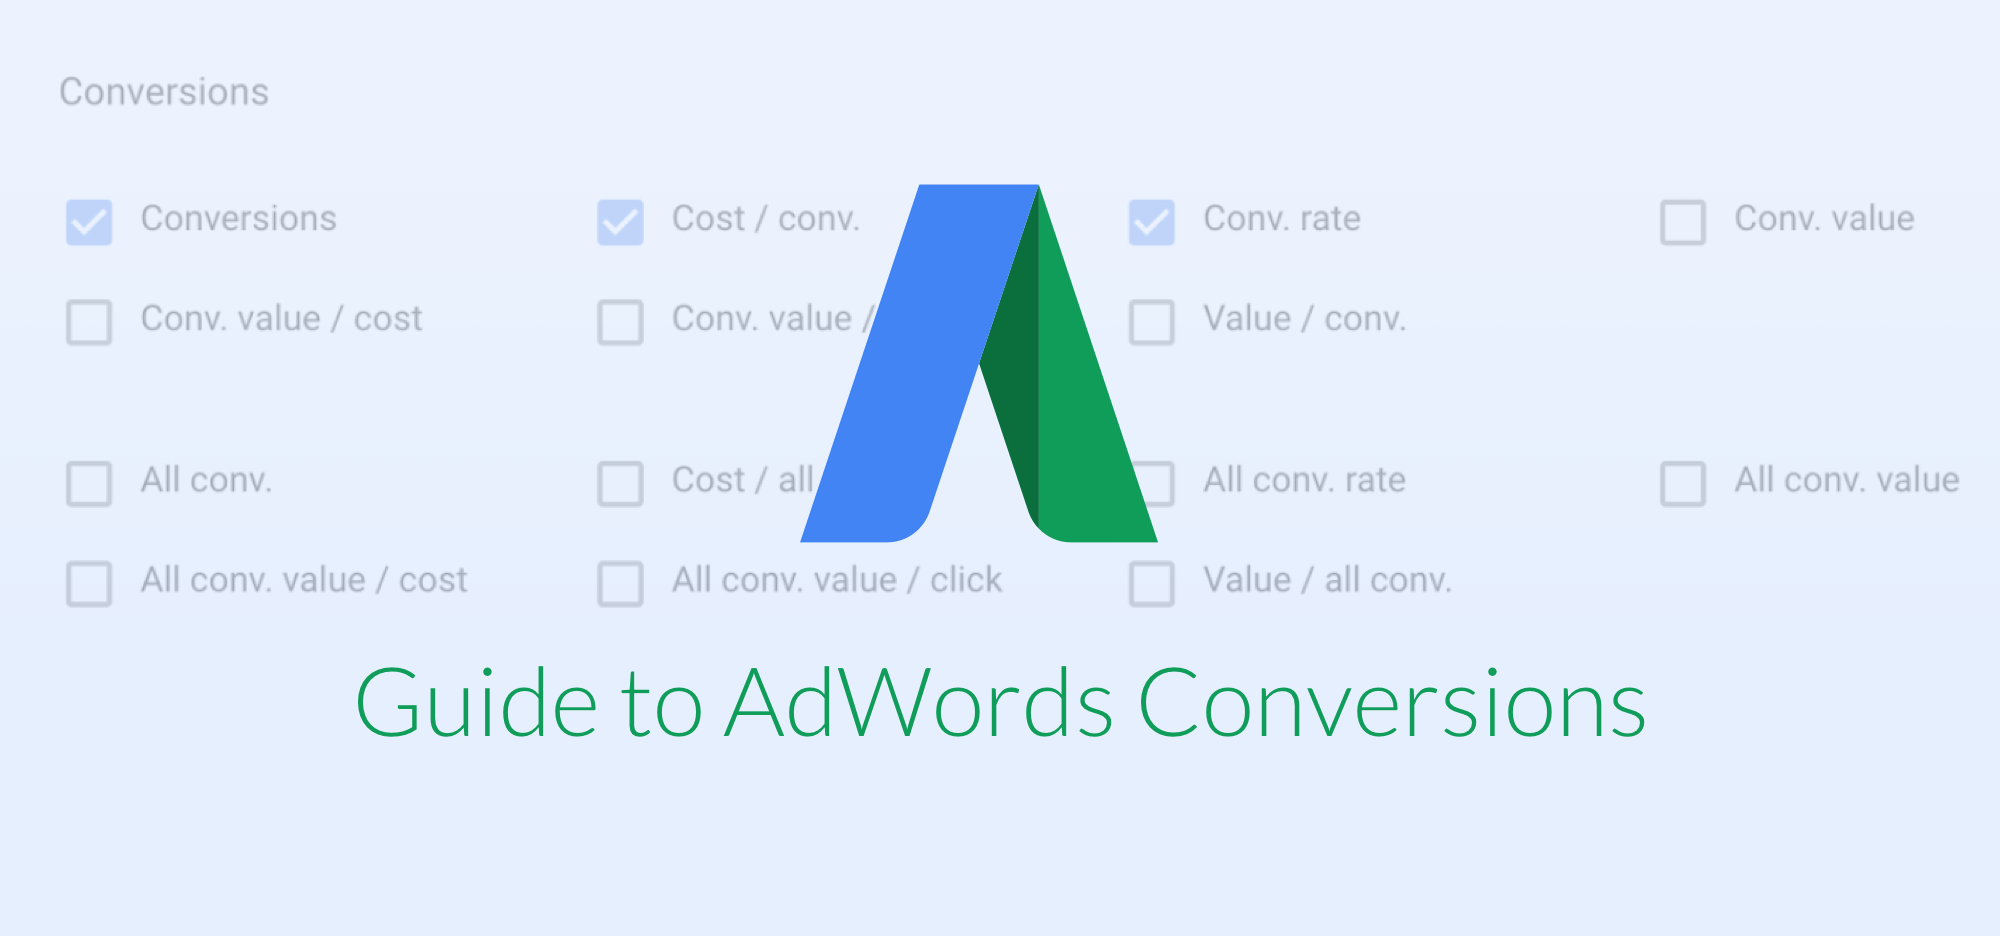 blog-guide-adwords-conversions.png